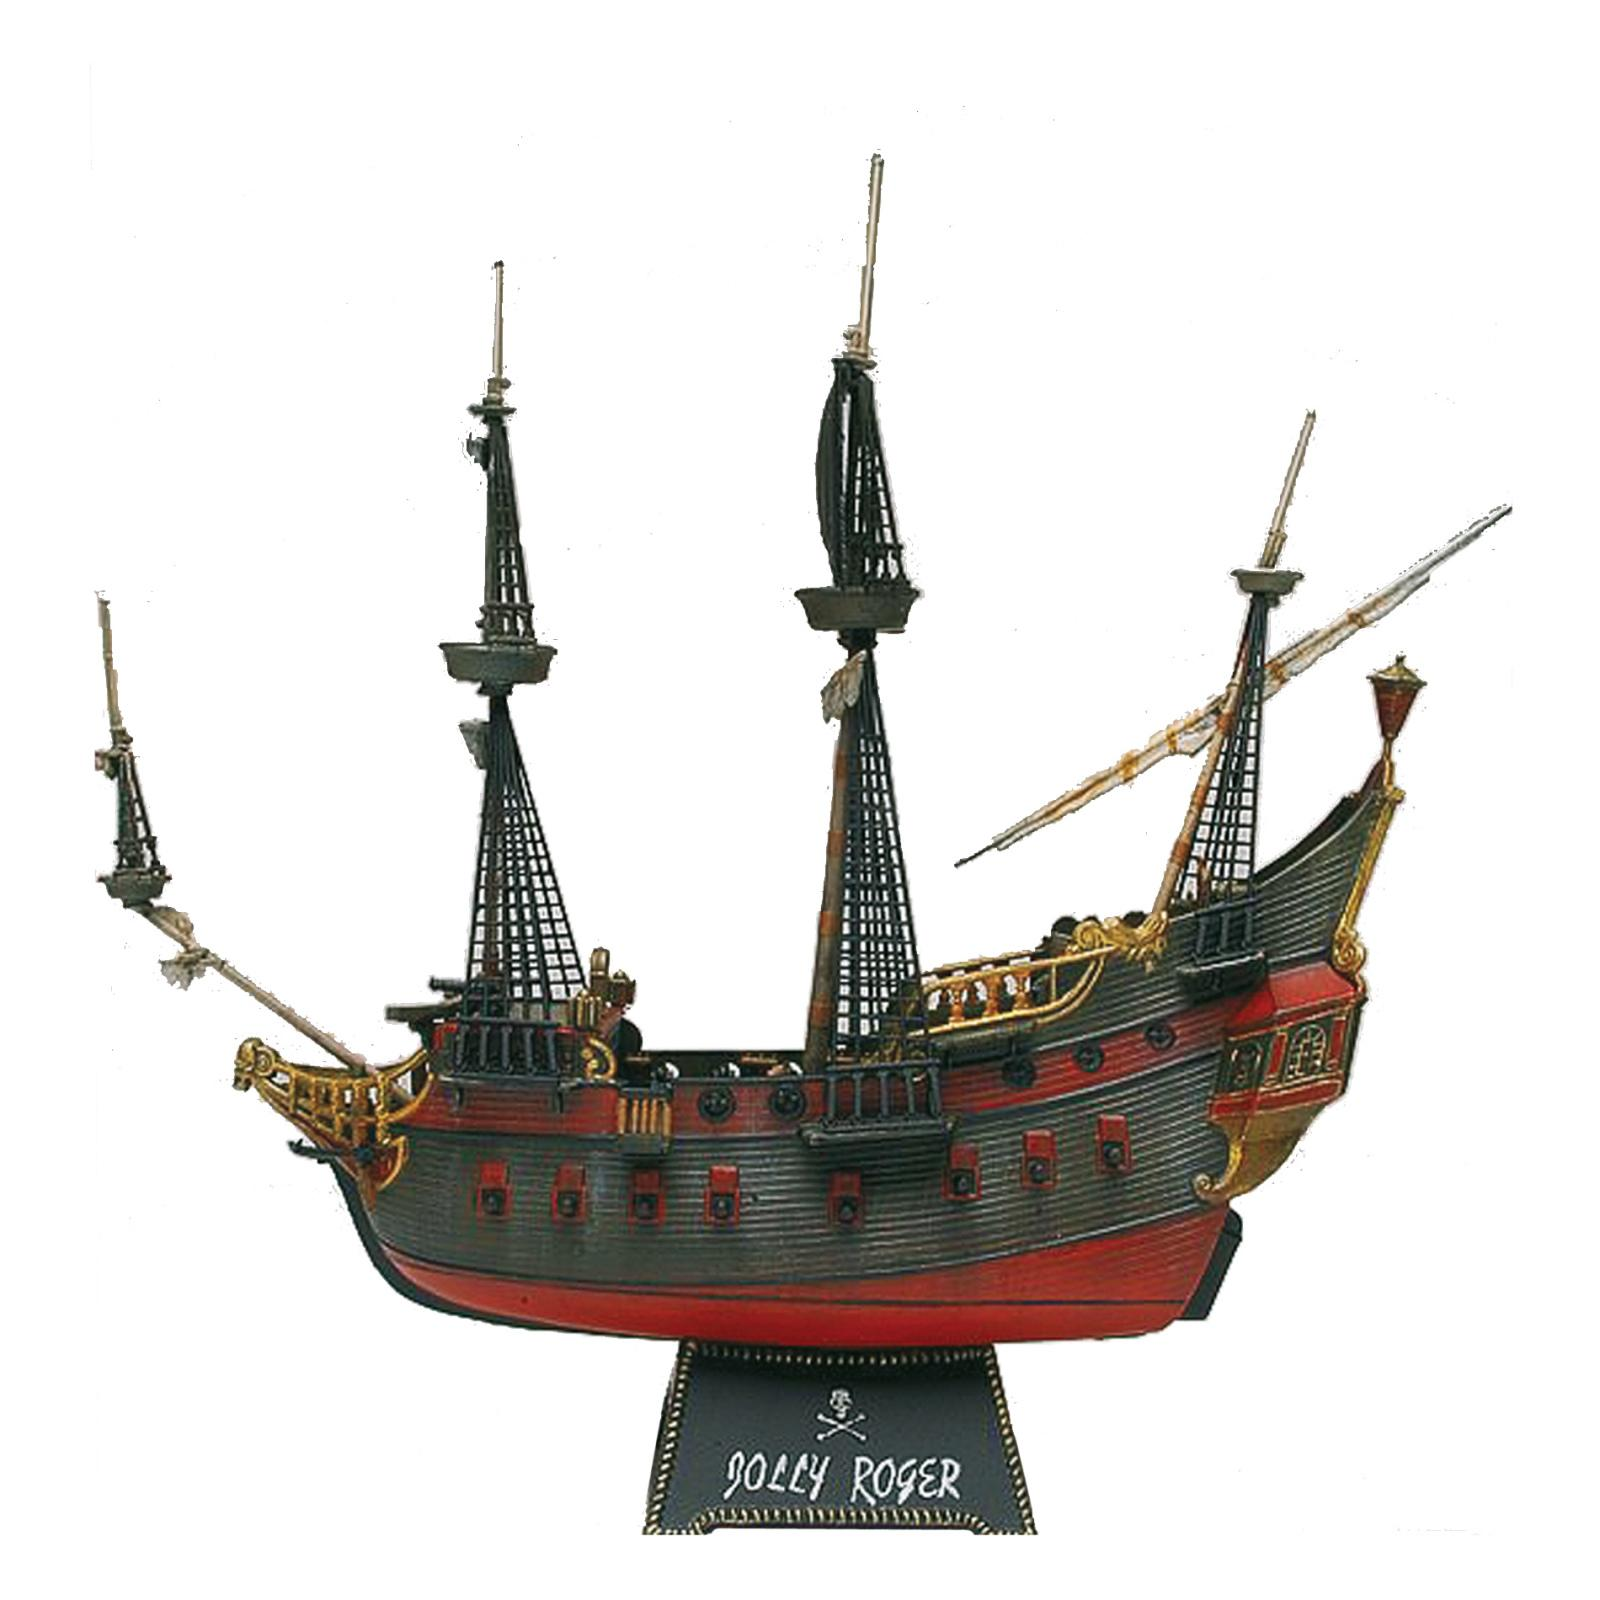 Revell 1:96 Scale Die Cast Caribbean Pirate Ship